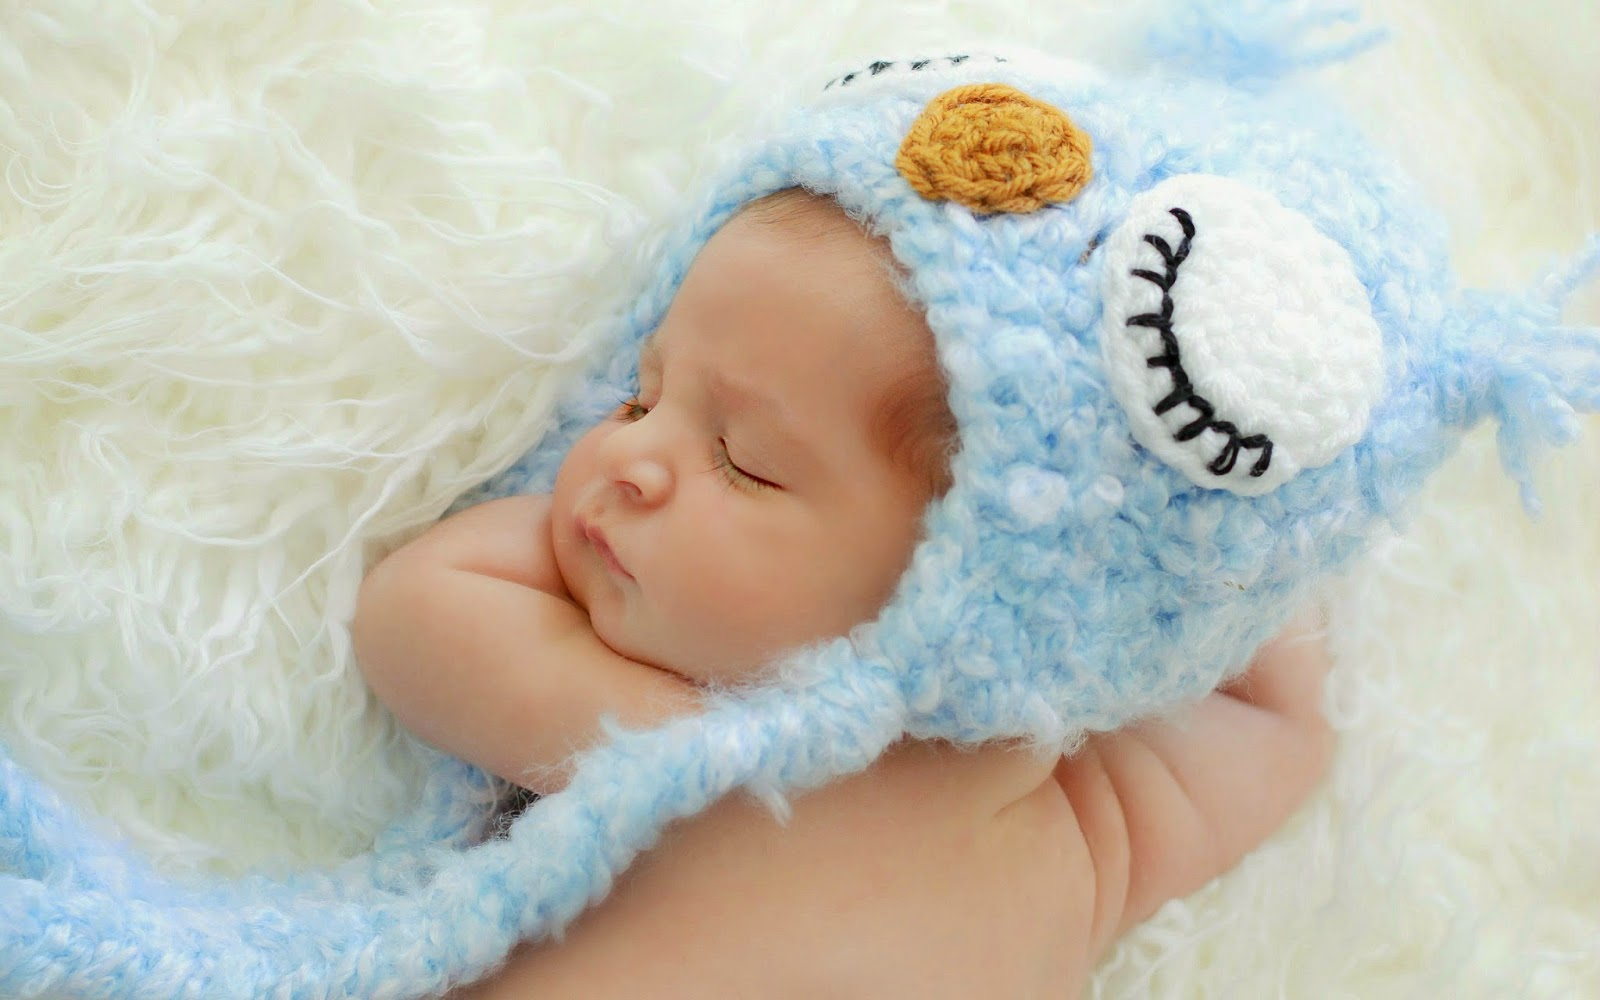 Cute baby sleeping images hd photos wallpapers pictures for Boby wallpaper